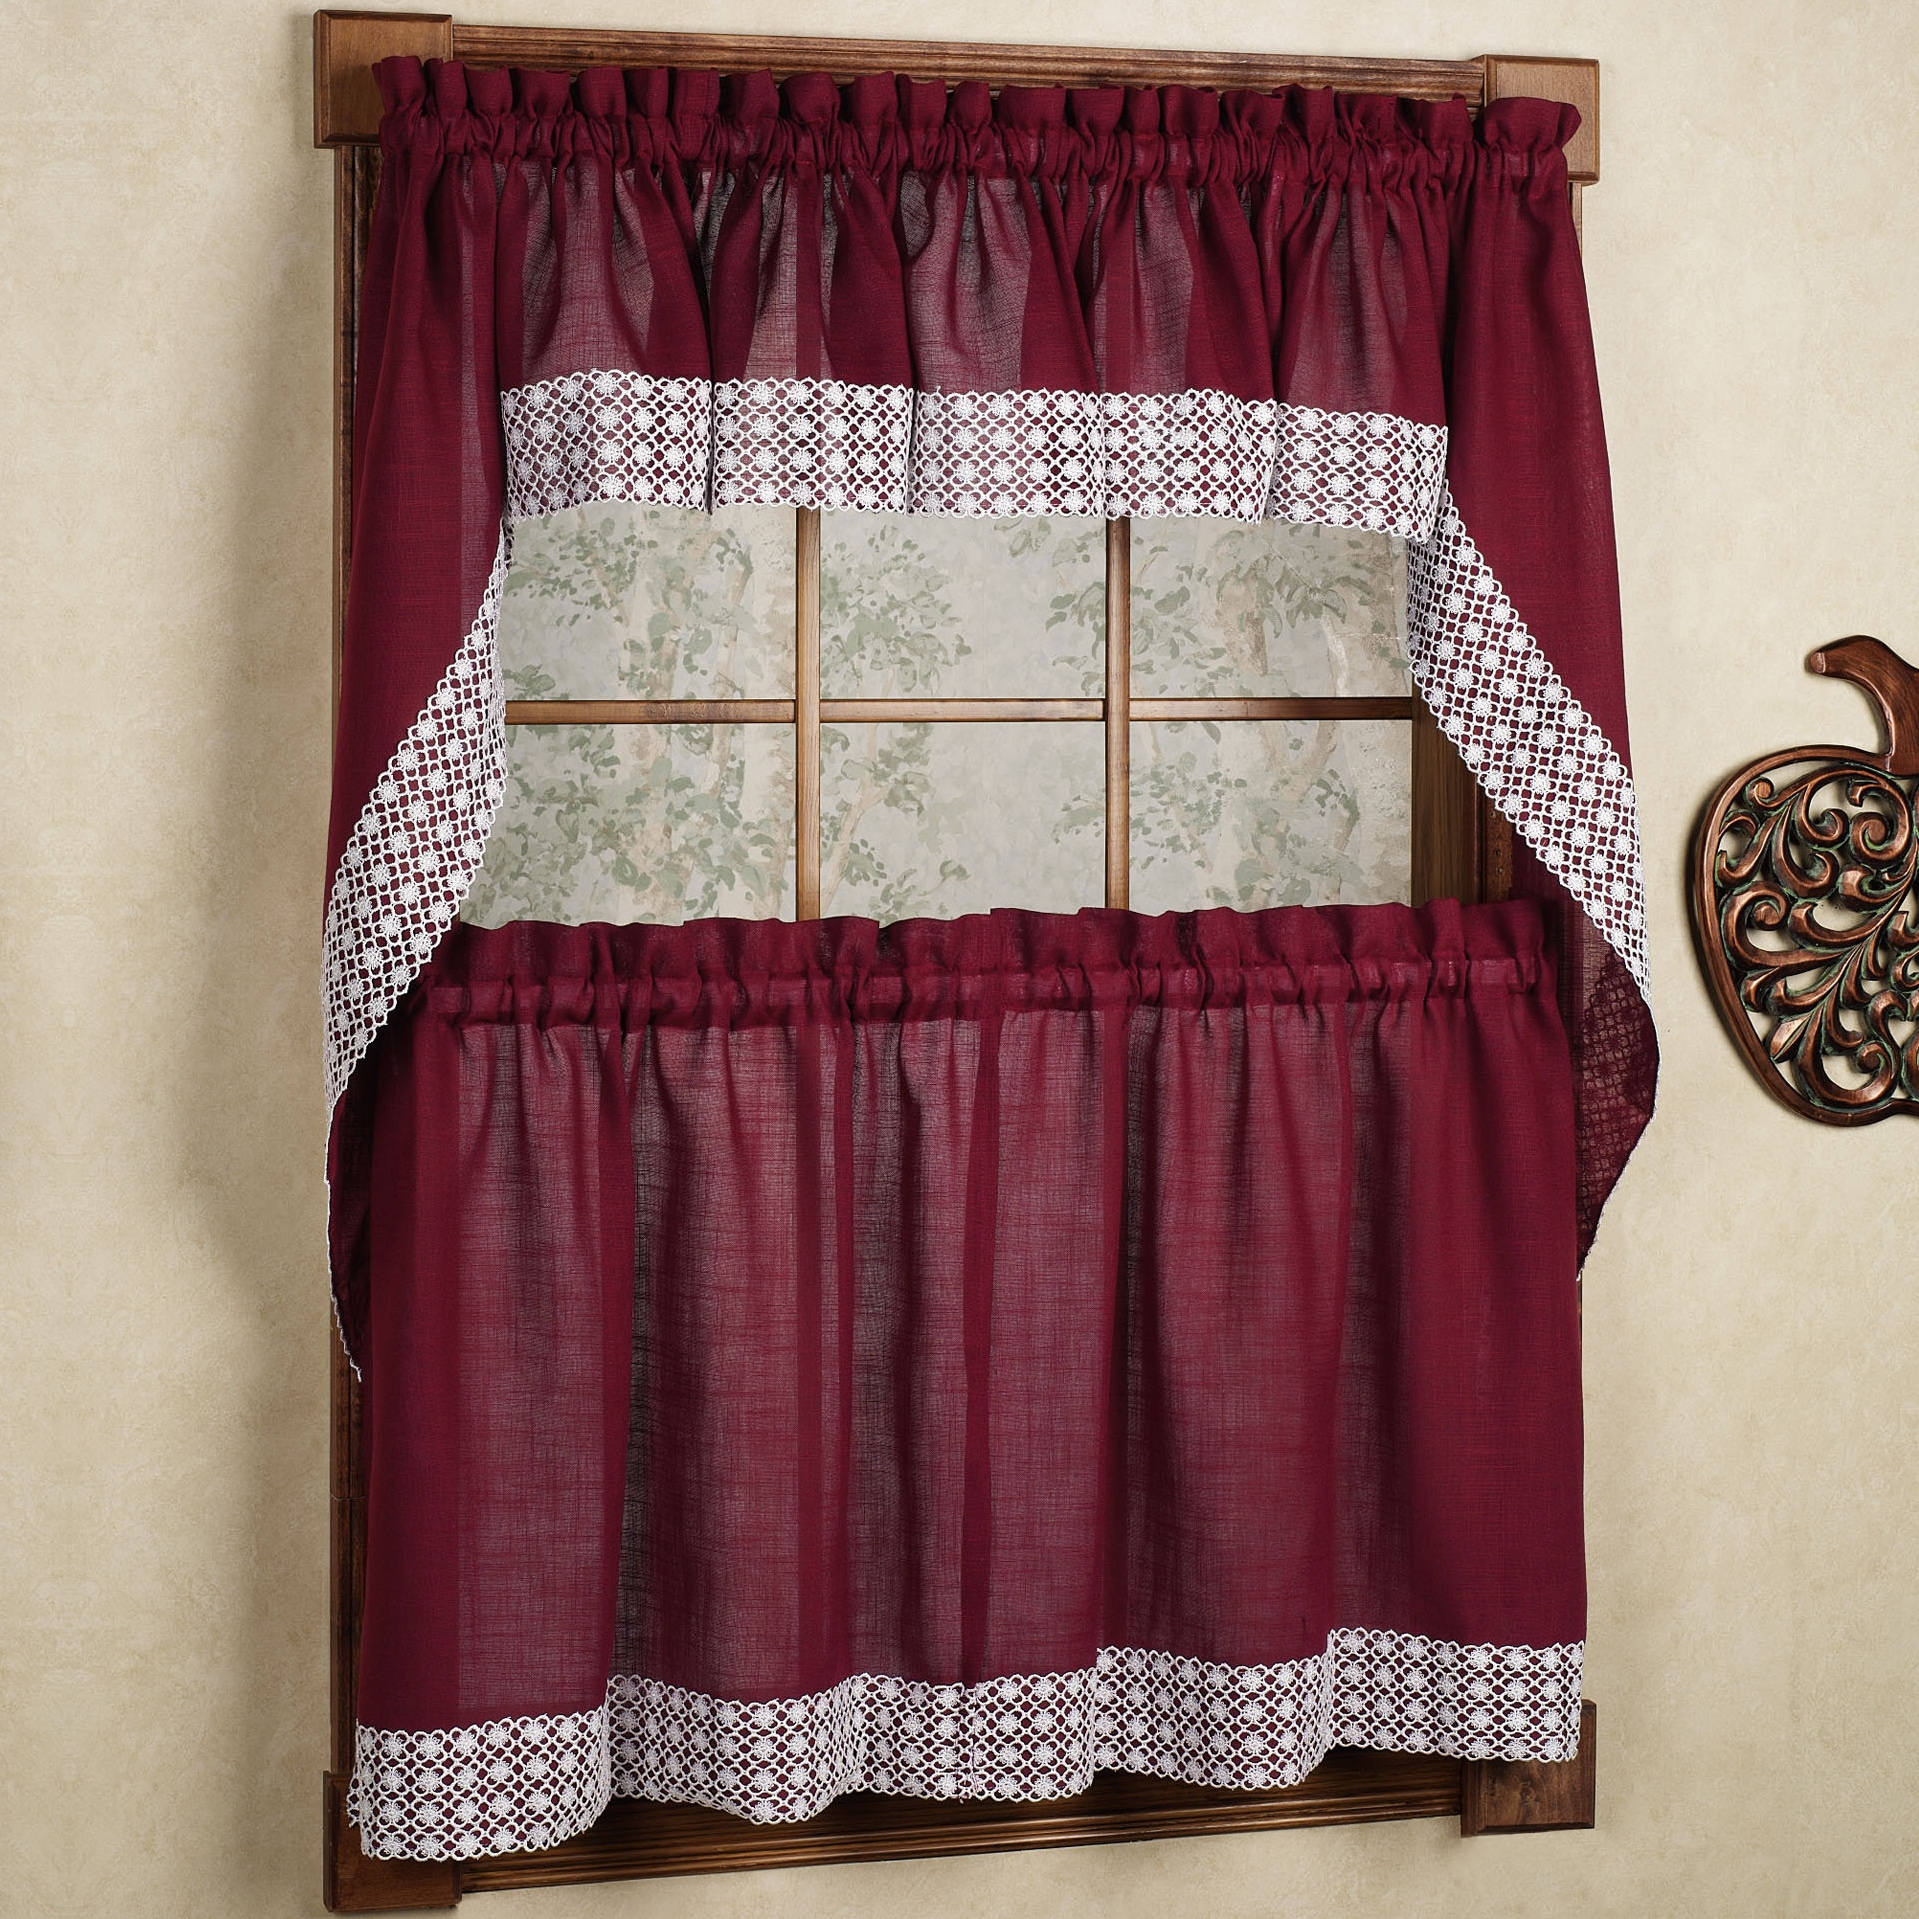 Burgundy Country Style Kitchen Curtains with White Daisy ...